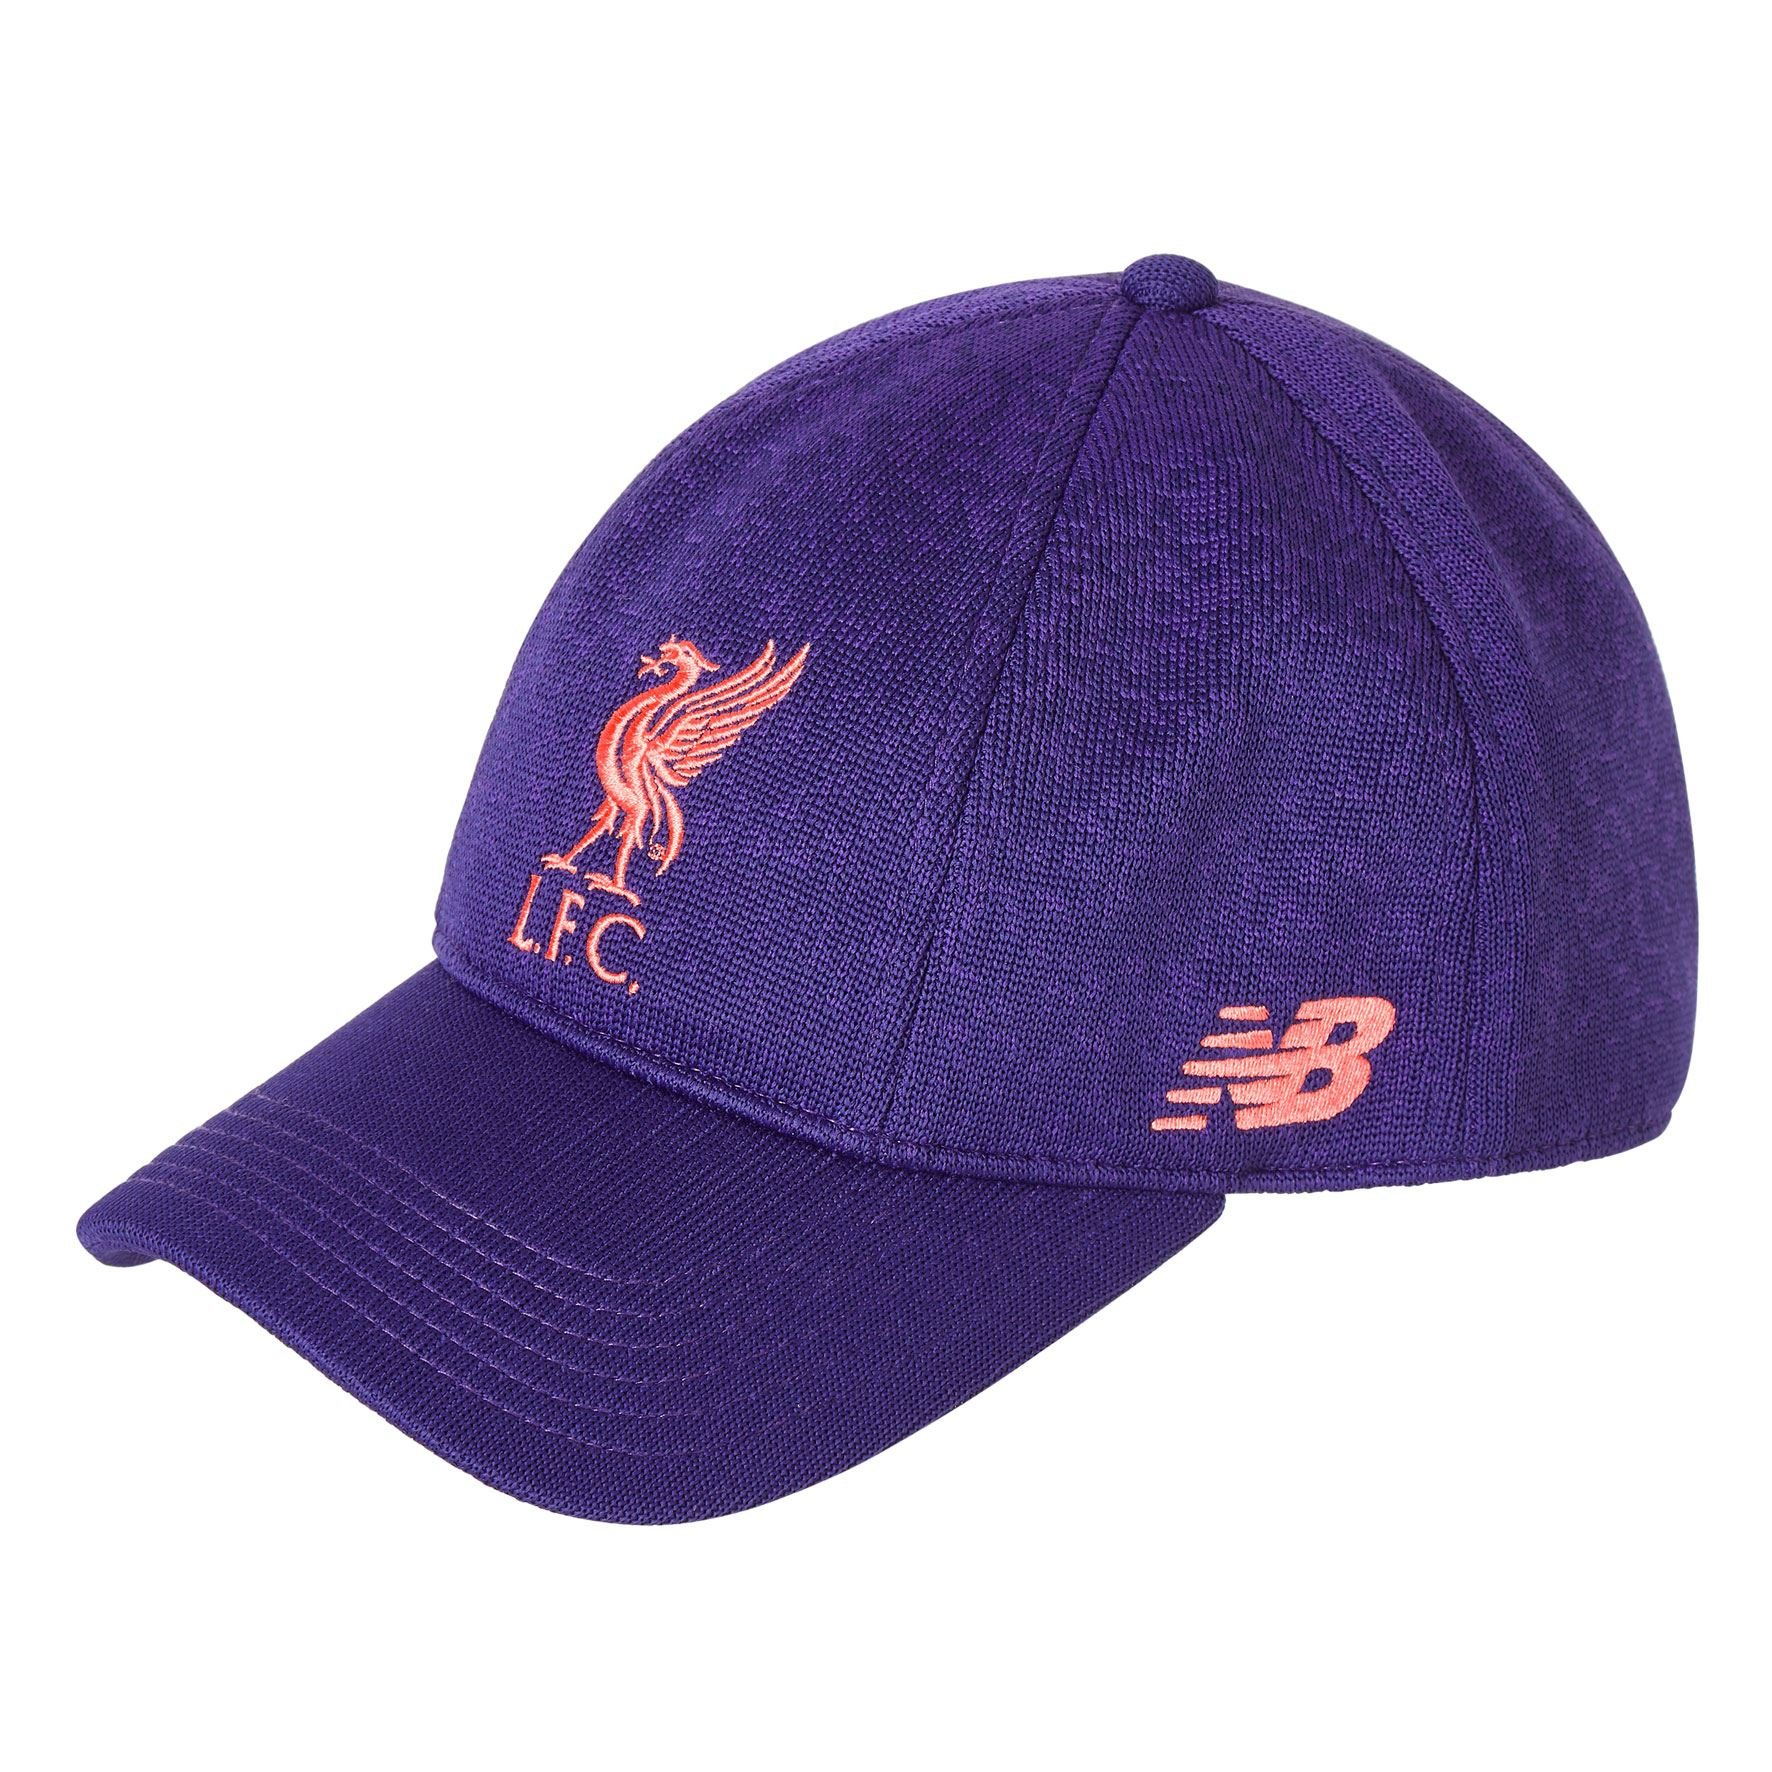 51094b921b3 Details about Liverpool FC NB Purple Klopp Marl Cap 18 19 LFC Official